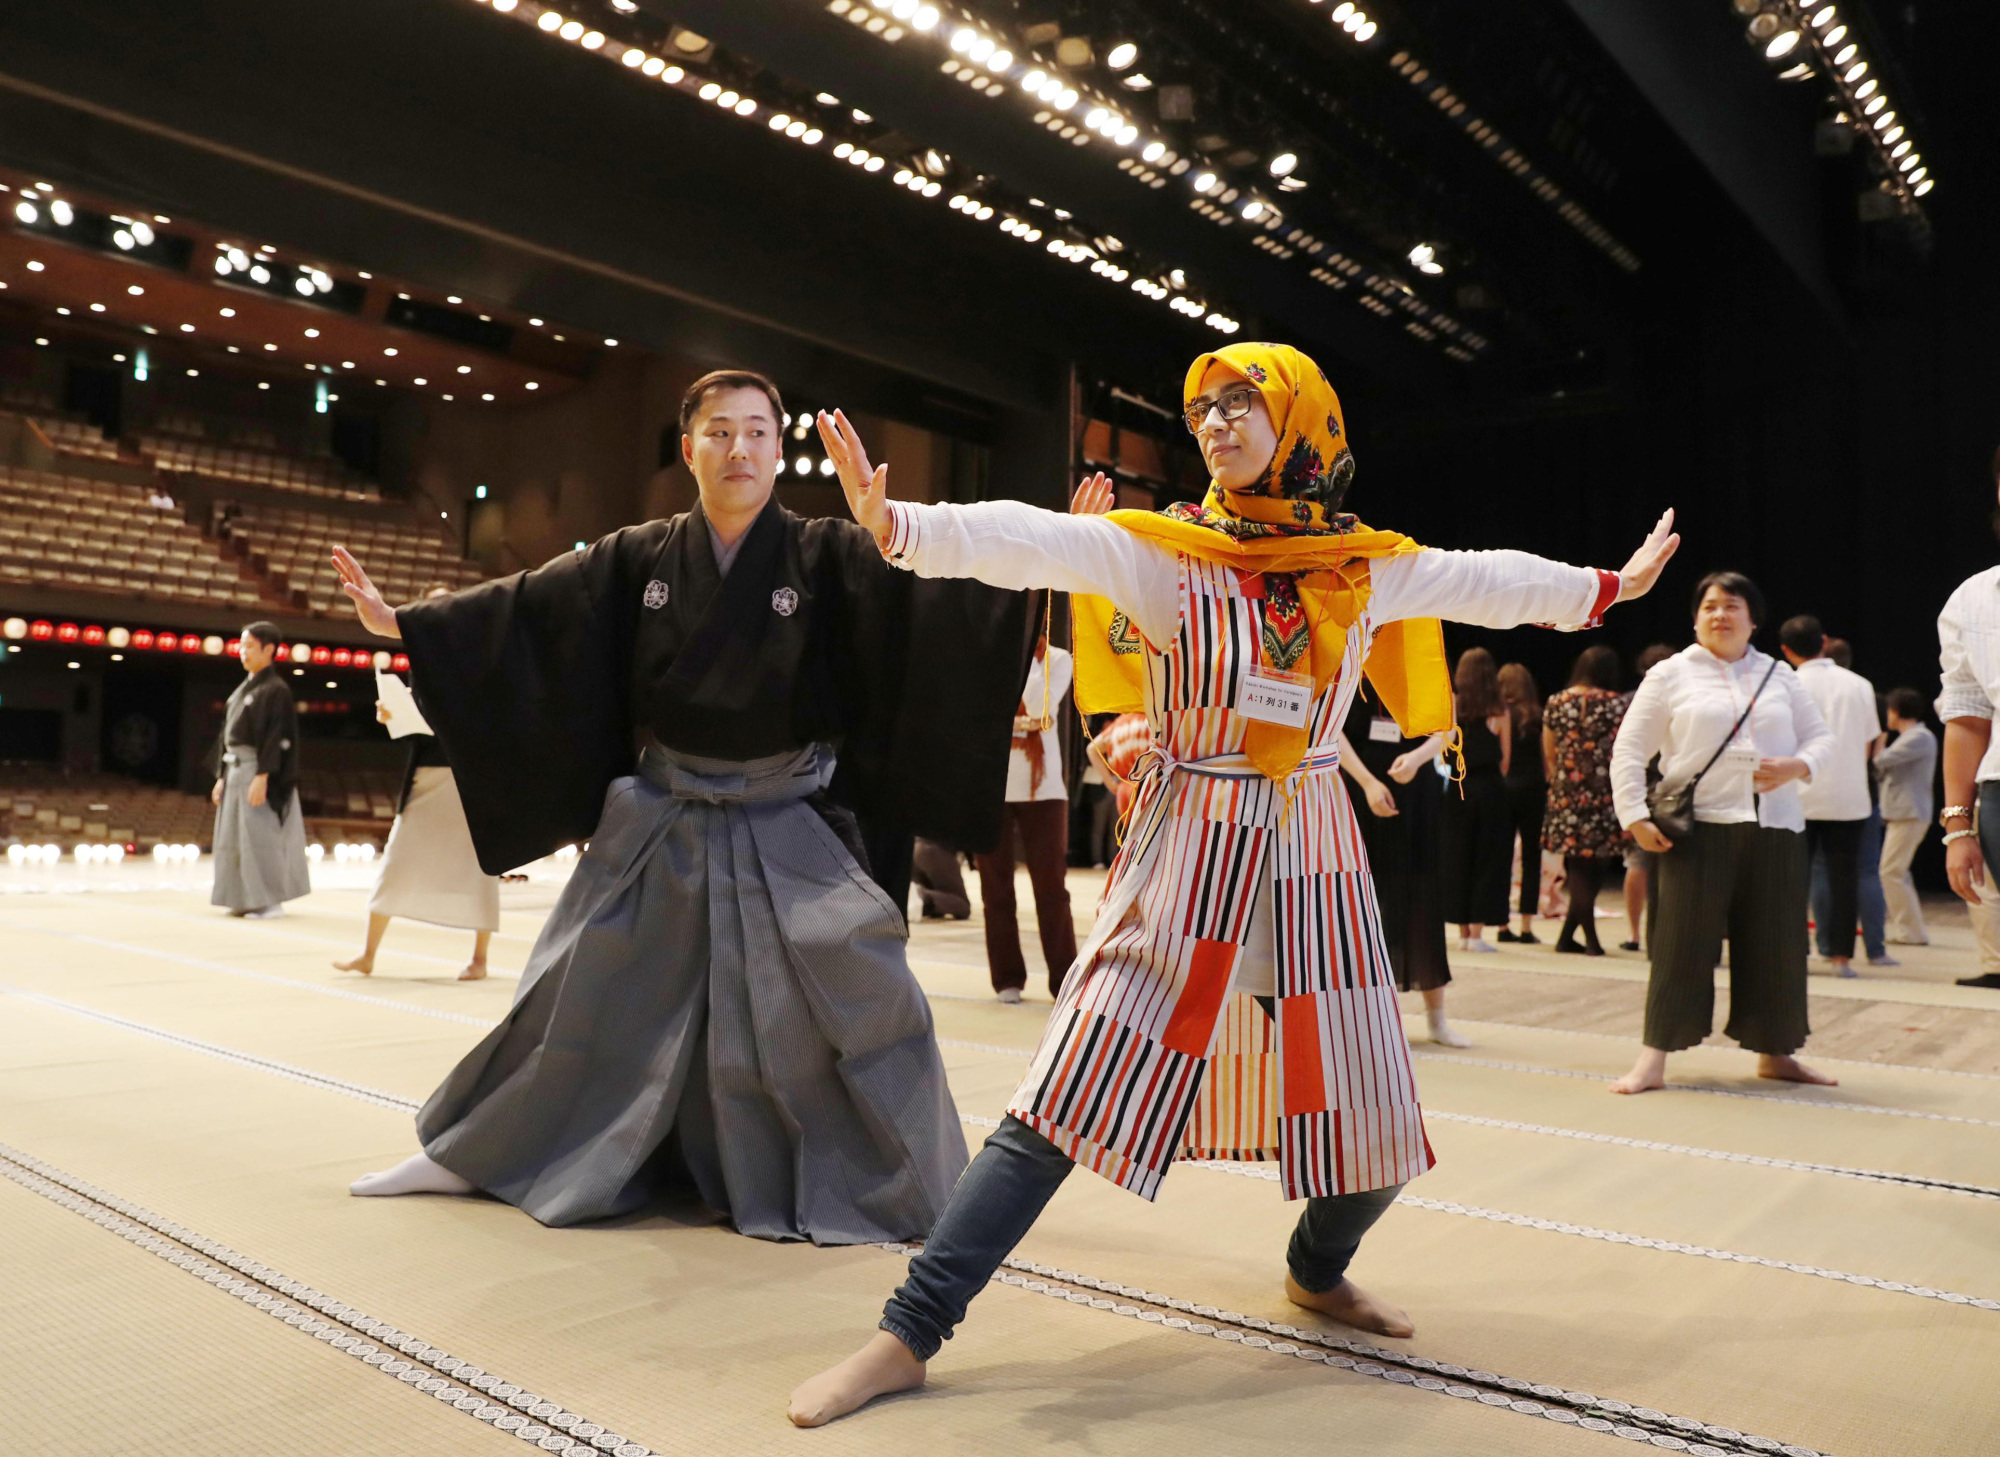 Strike a pose: An Iranian student attends a kabuki workshop for foreign participants at the National Theatre in Tokyo. | KYODO